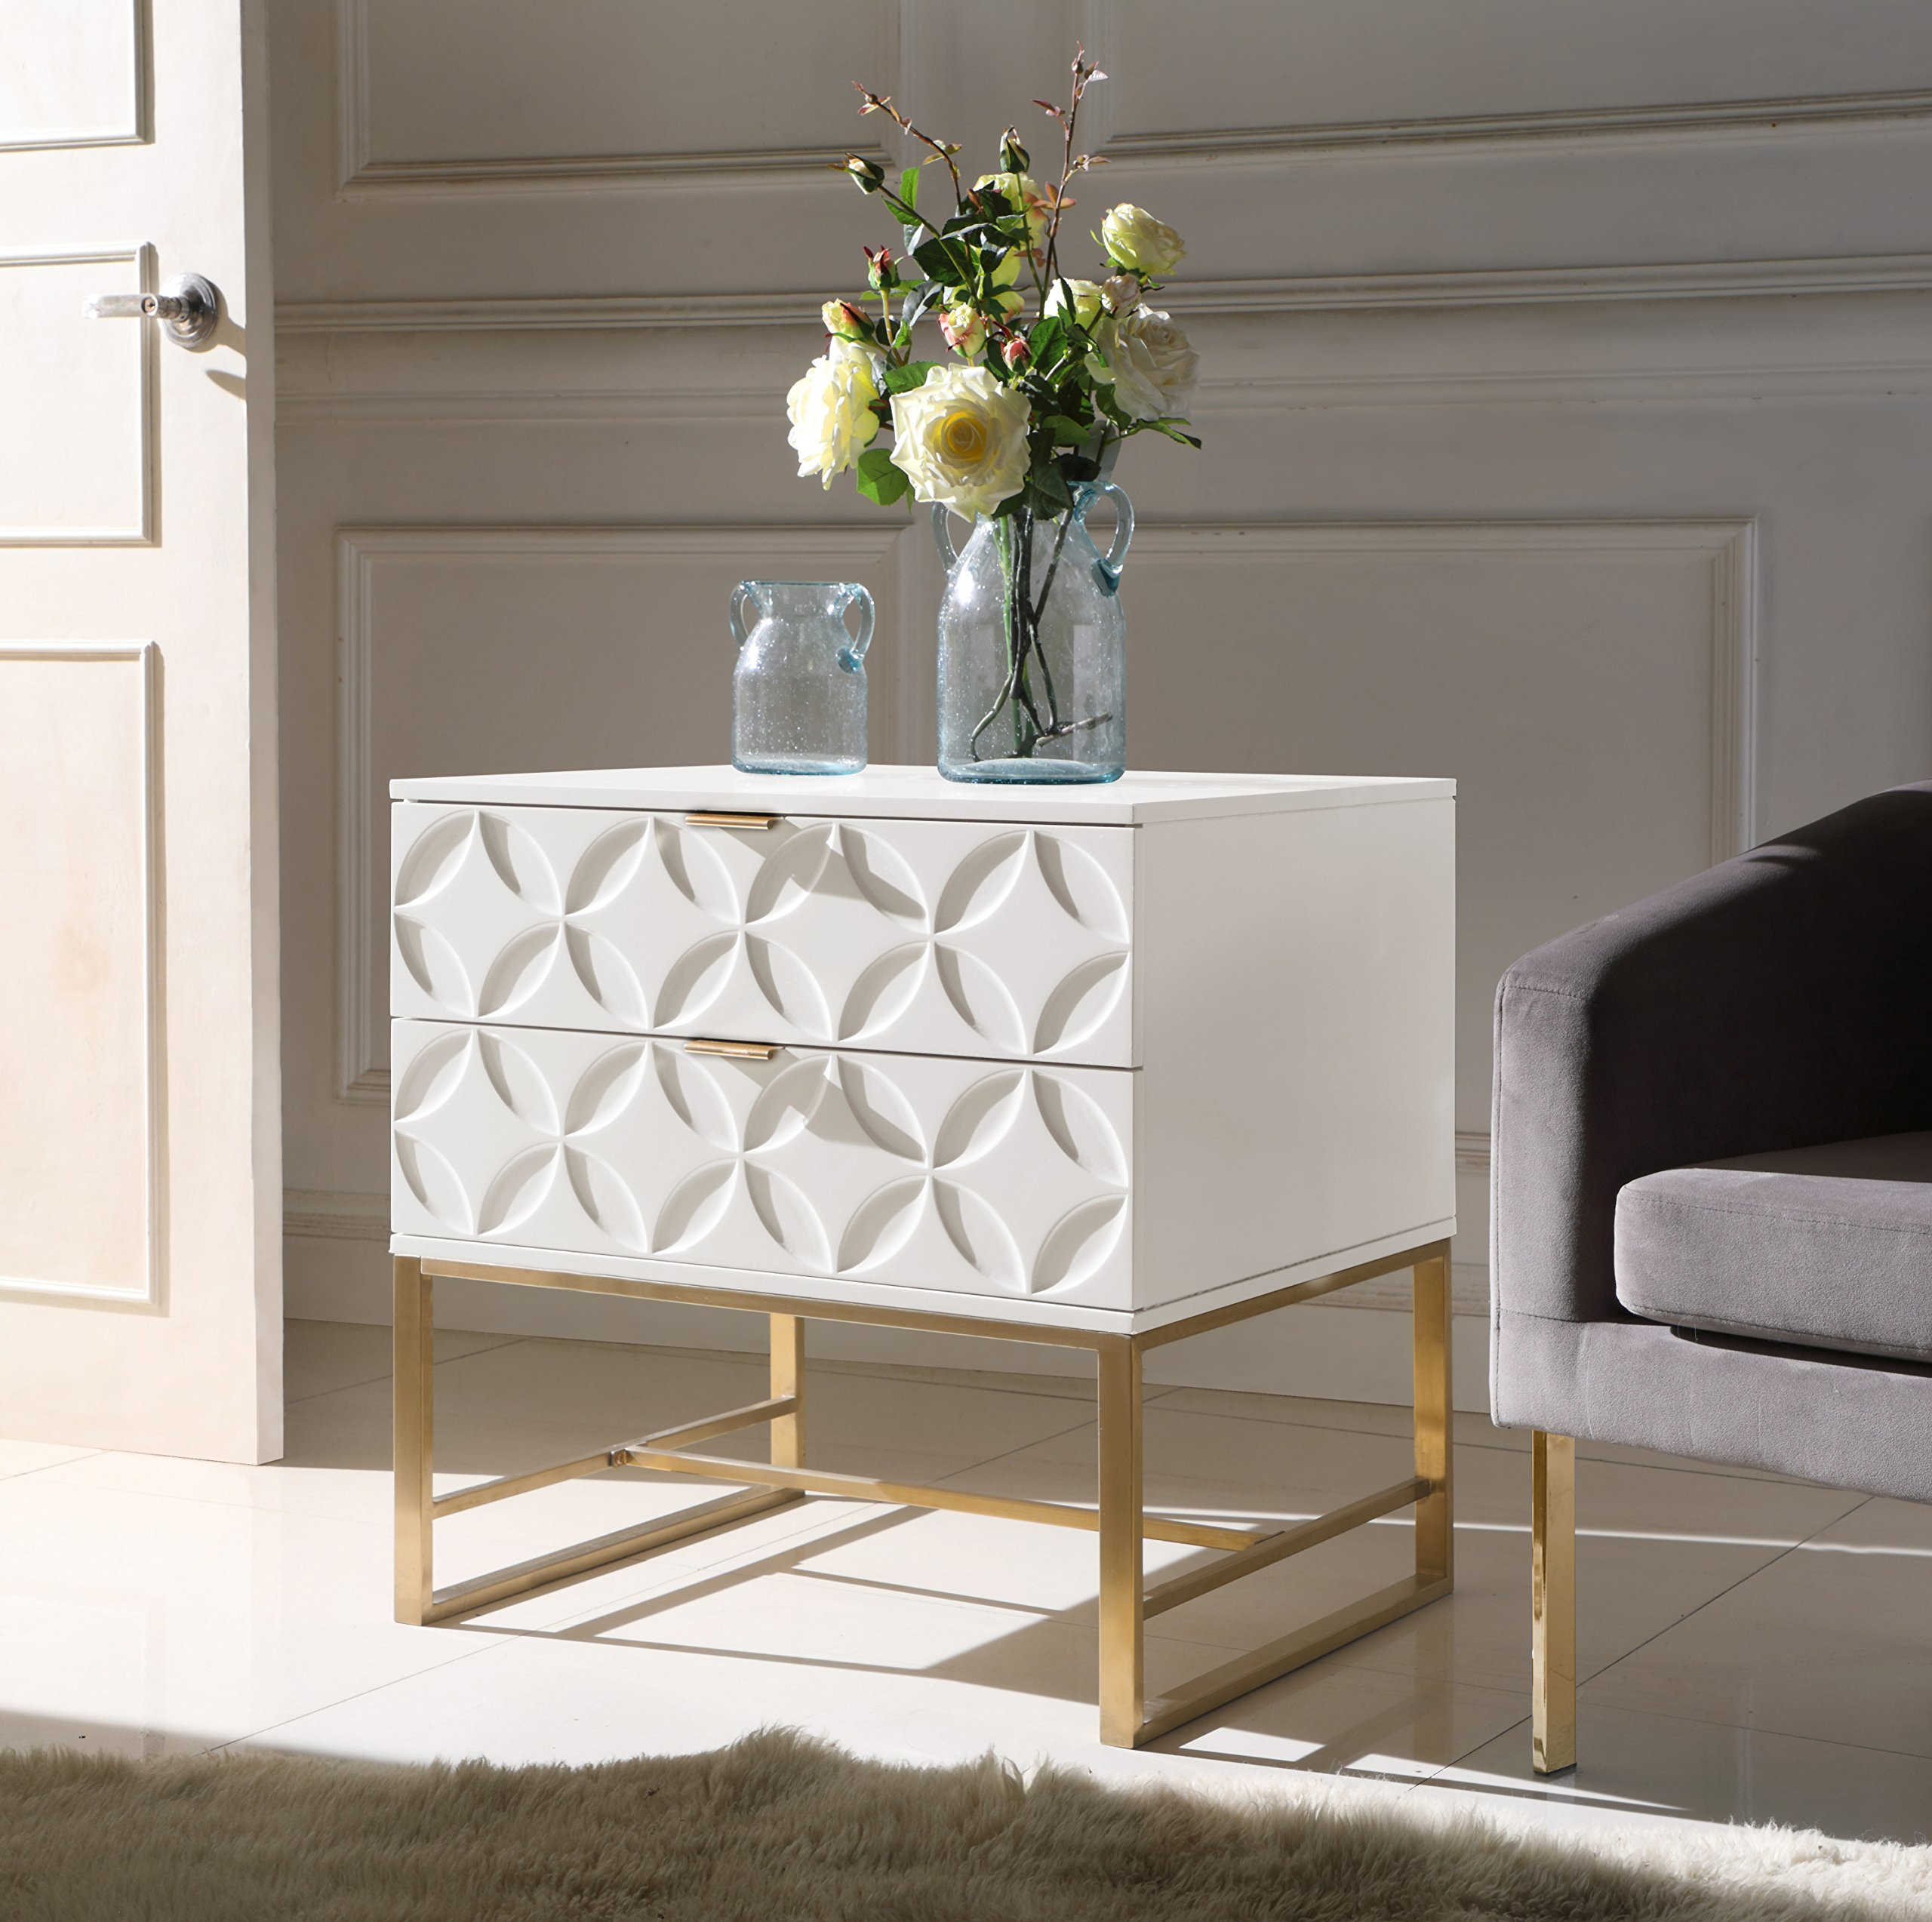 Iconic Home Jenica Nightstand Side Table with 2 Self Closing Lacquer Drawers Brass Finished Stainless Steel Frame Base, Modern Contemporary, White by Iconic Home